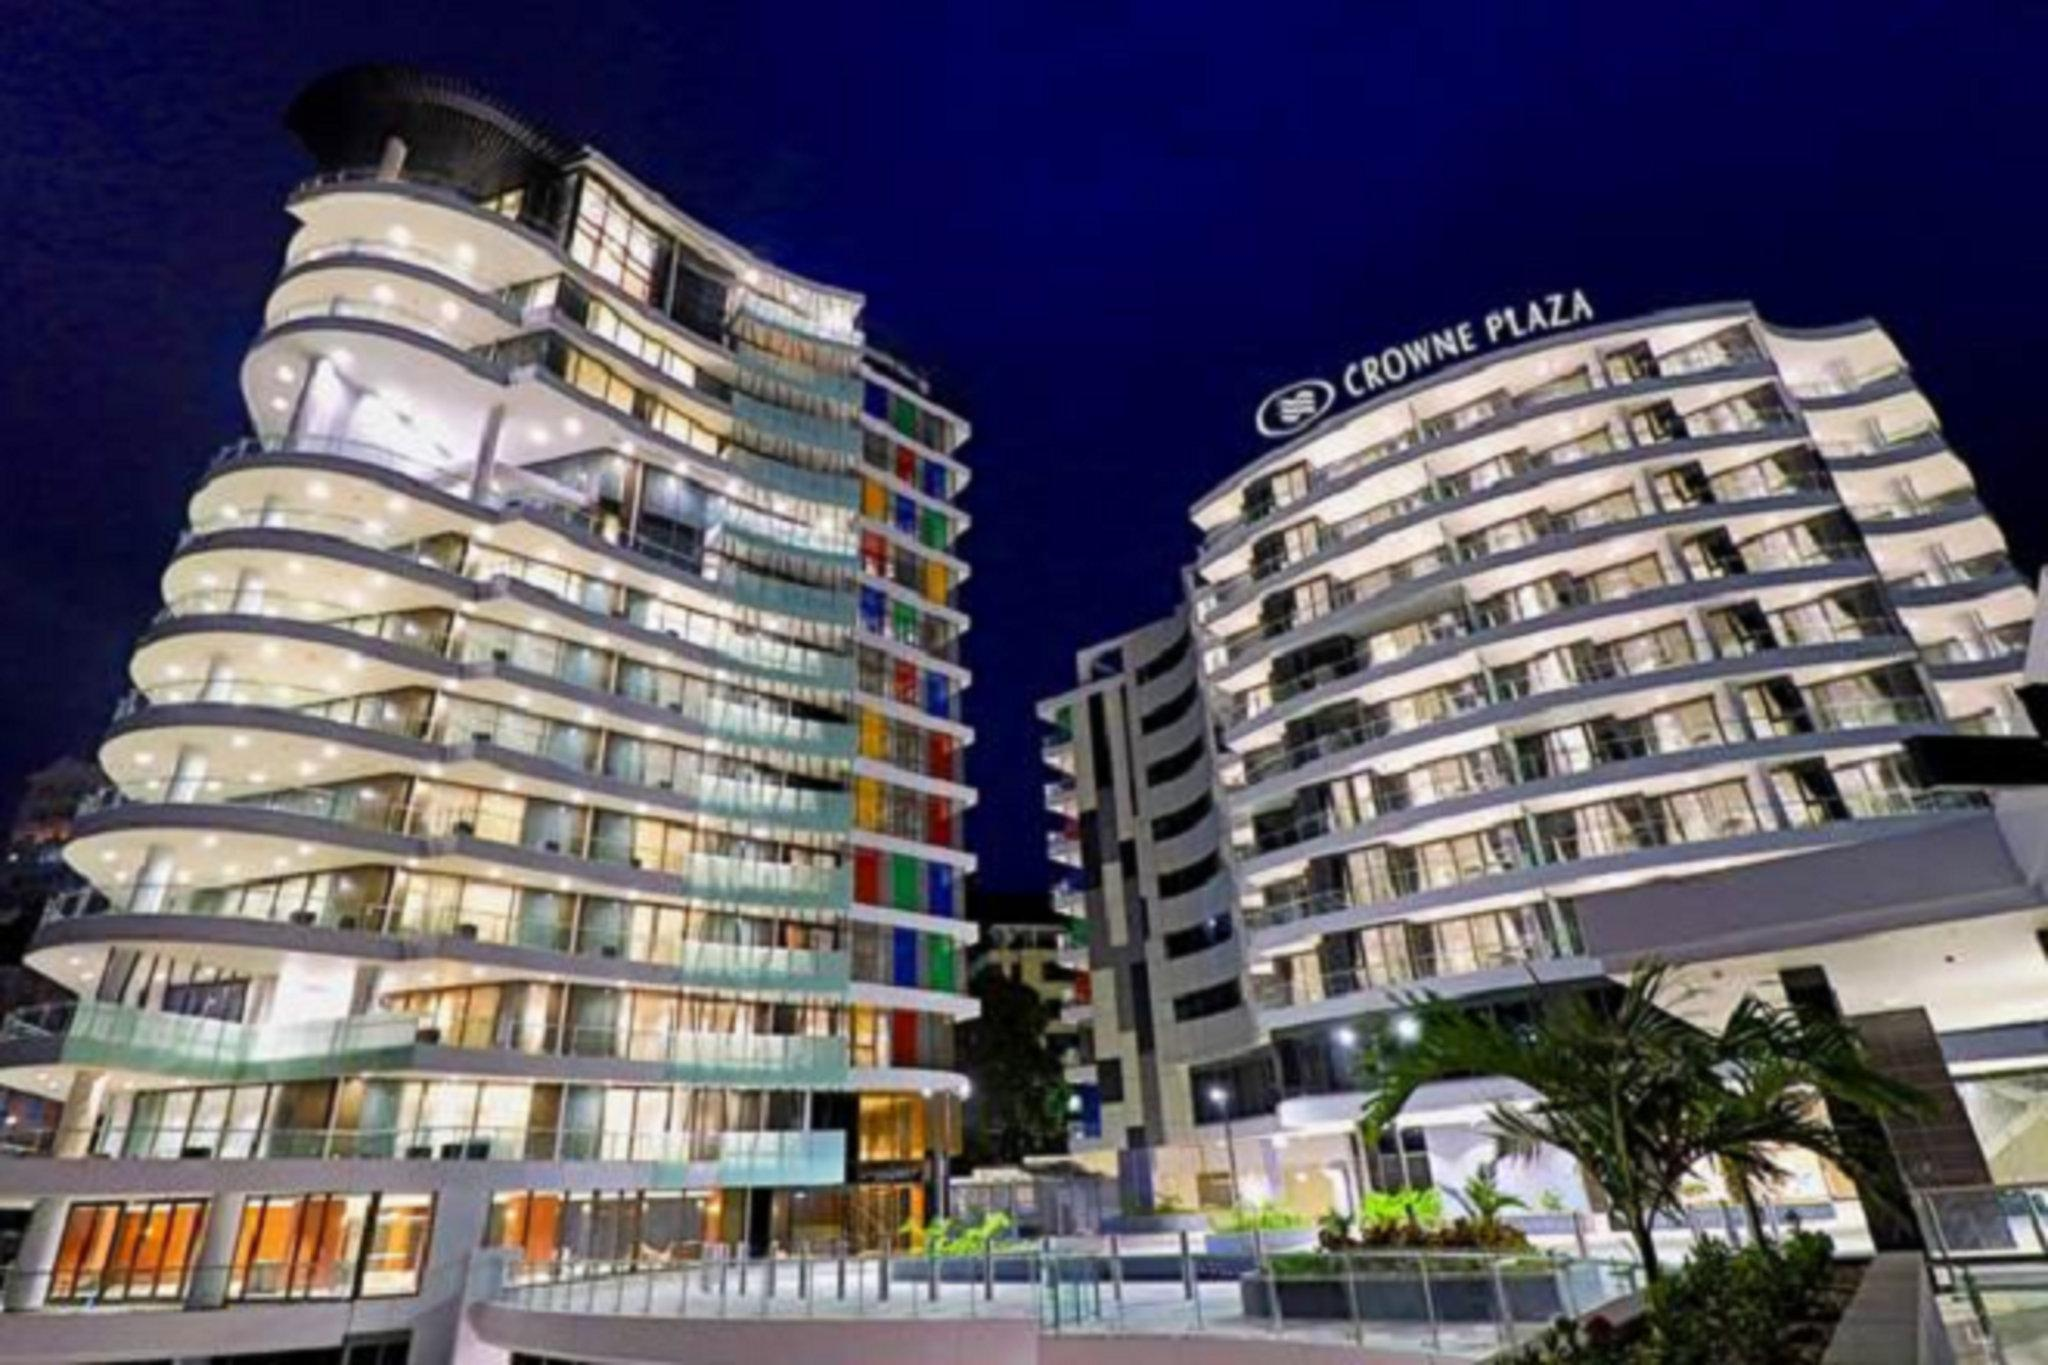 Crowne Plaza Residences Port Moresby, National Capital District